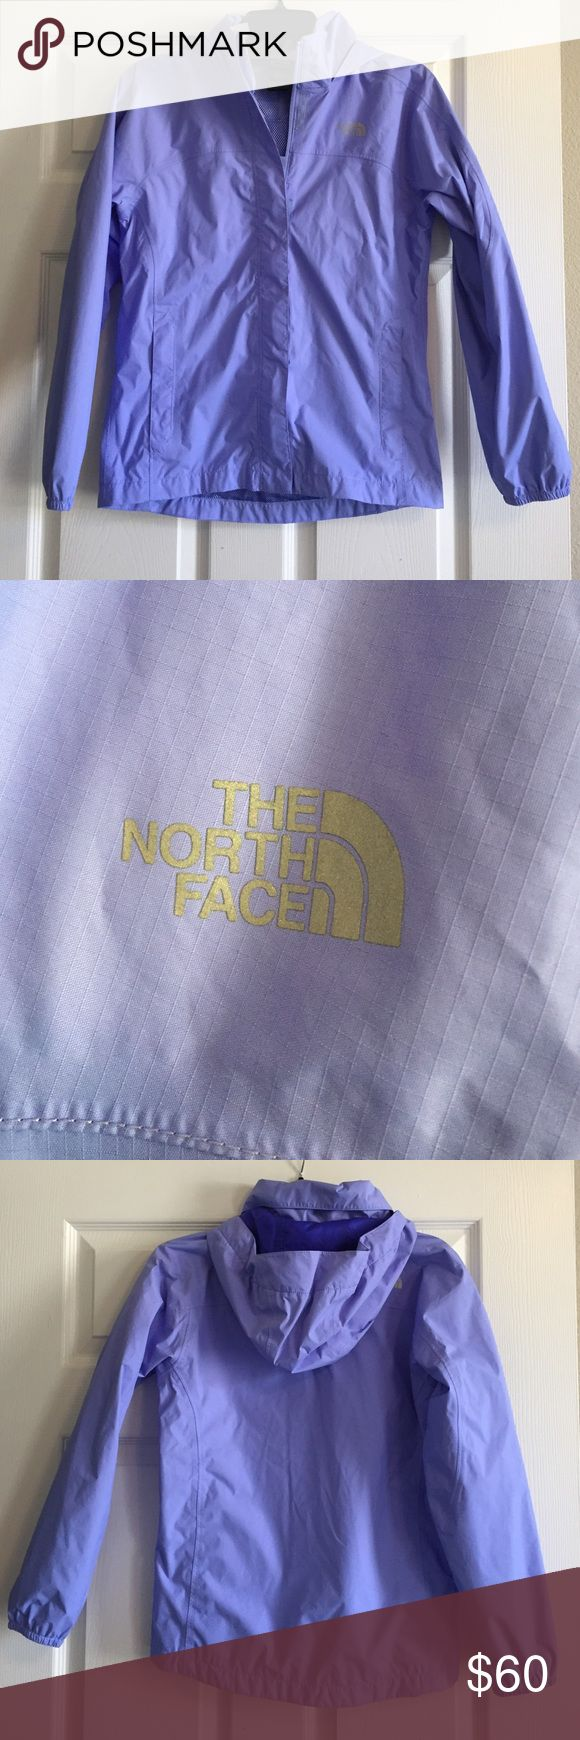 Girls North Face Jacket Great condition. Girl's Size Large (14/16). Color is periwinkle. North Face Jackets & Coats